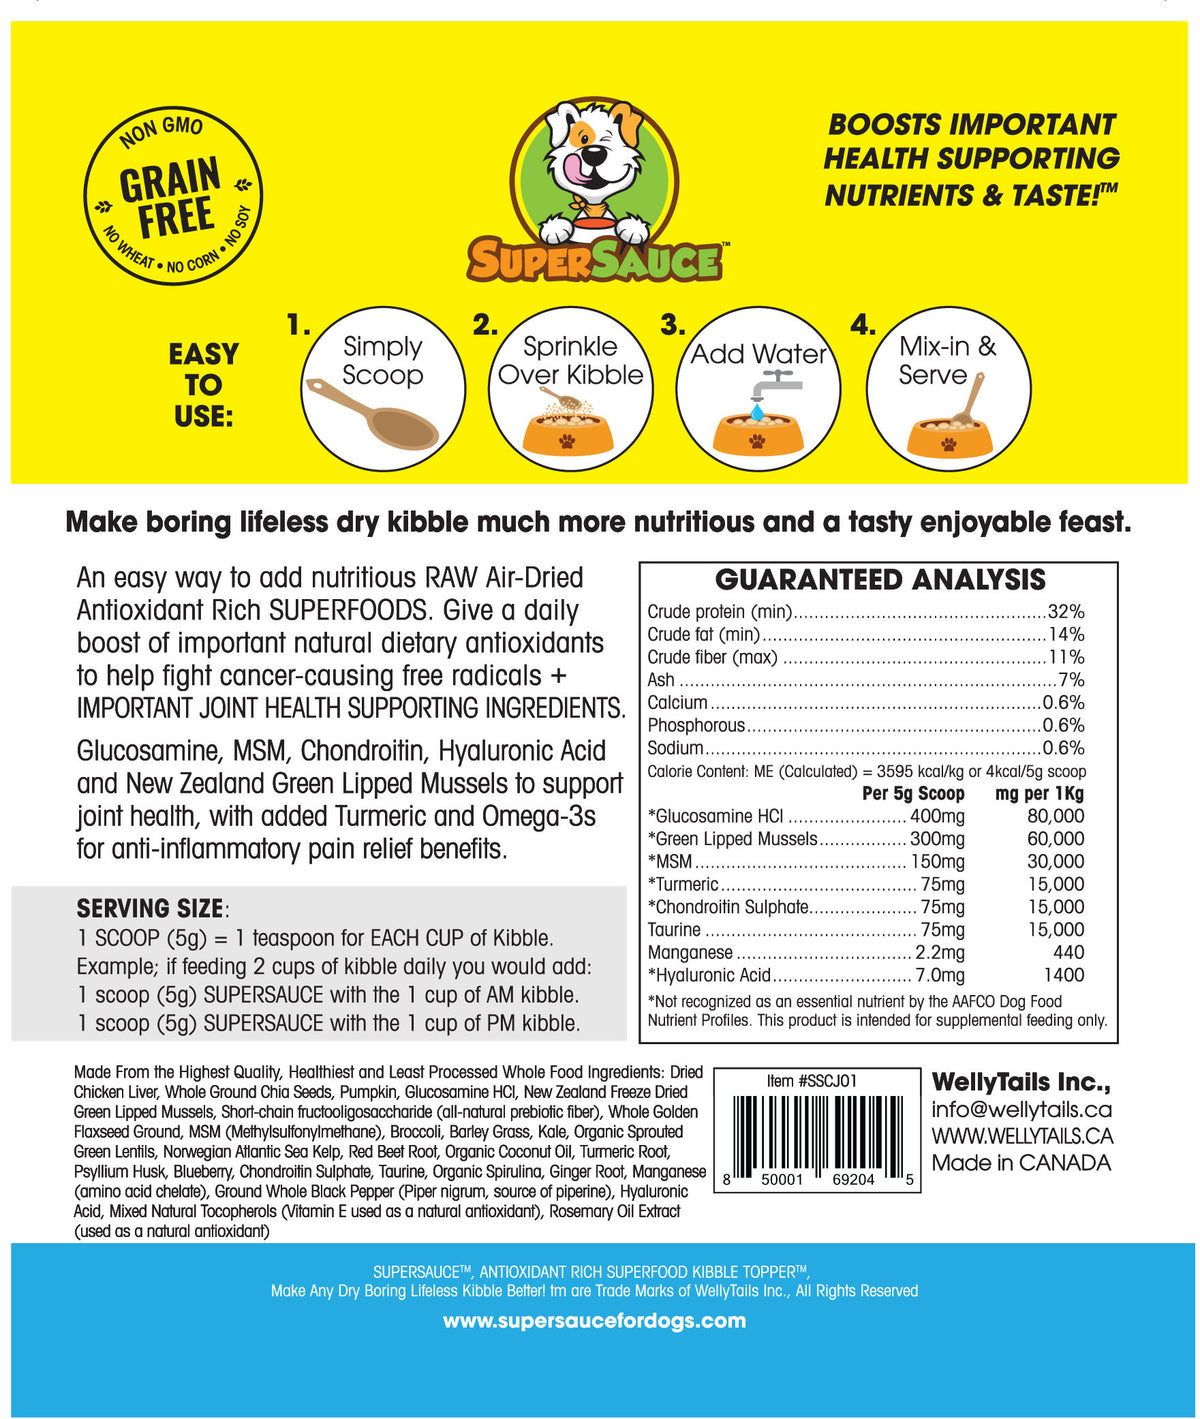 Chicken Liver + HIPS & JOINTS Health 5.4 oz. (153g) MADE IN CANADA- Nutrition guide+ Ingredients